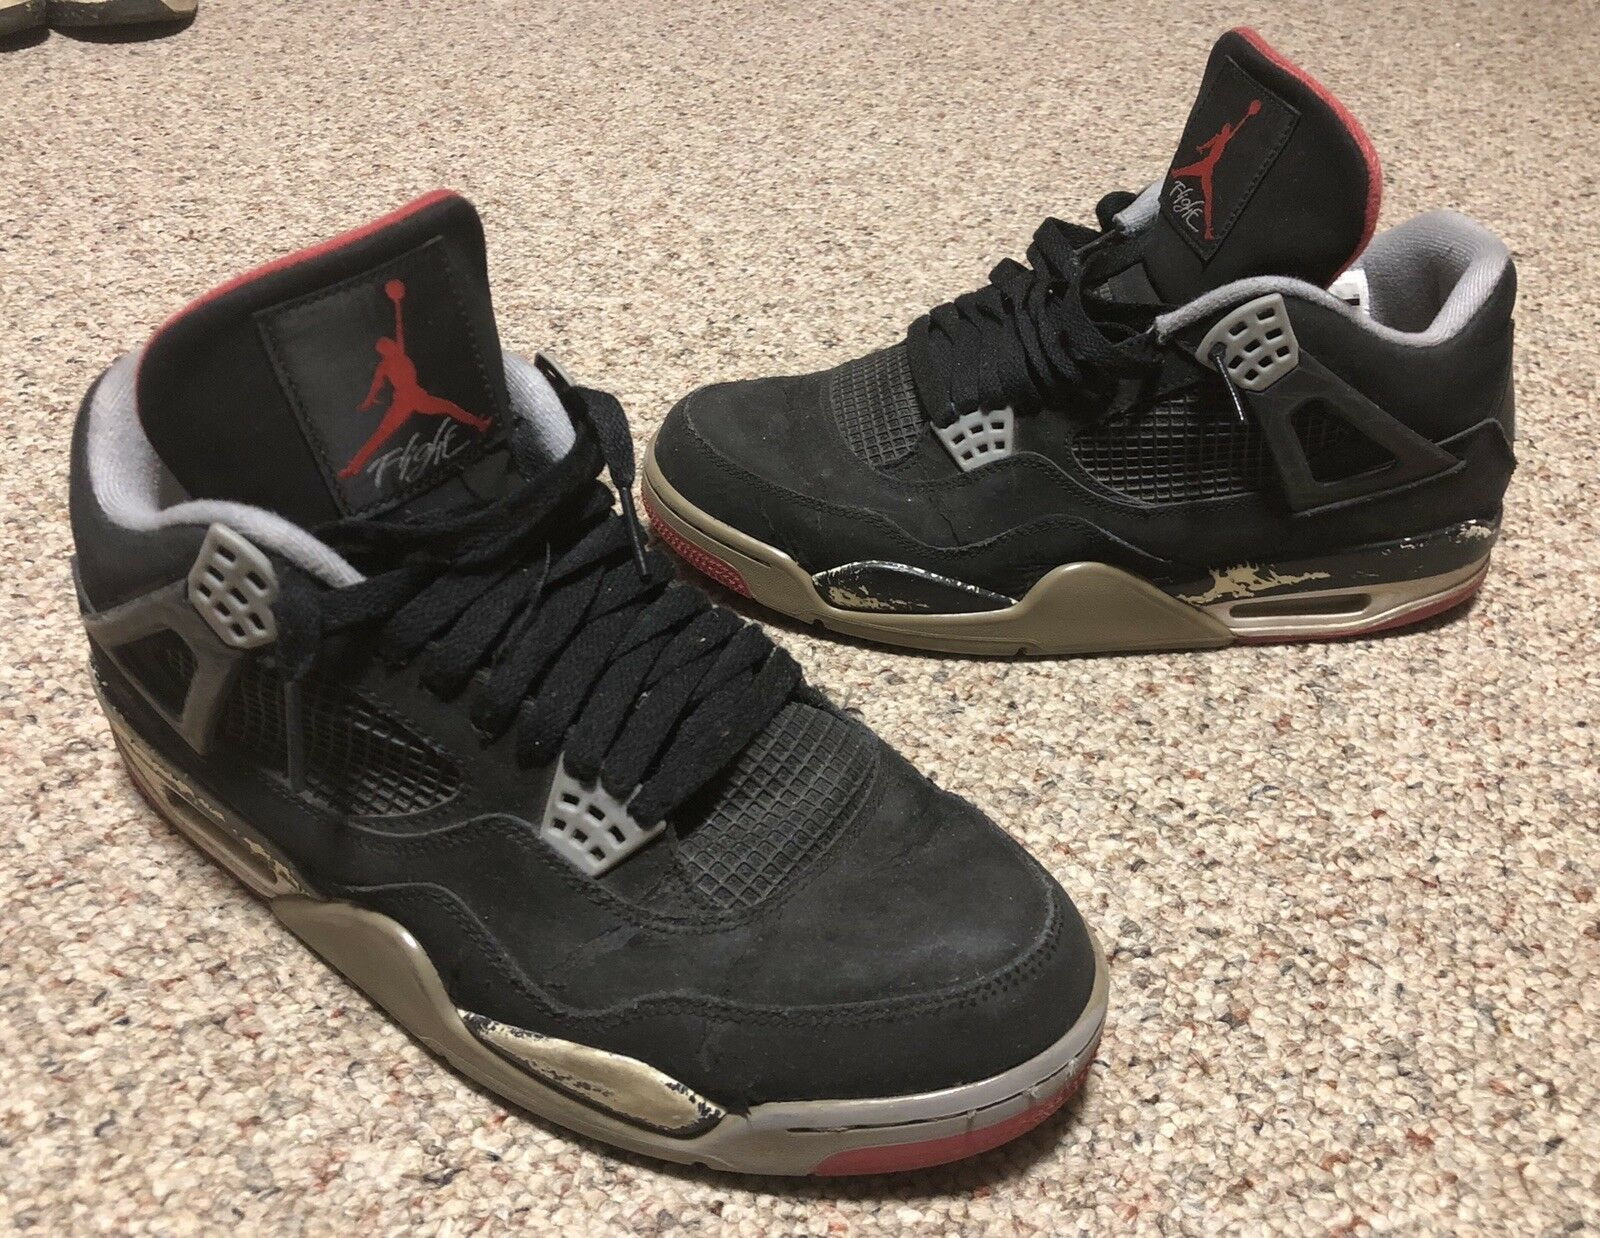 Air Jordan IV 4 Retro Bred Edition 308497-089 Size 11.5 Used Trashed Beaters